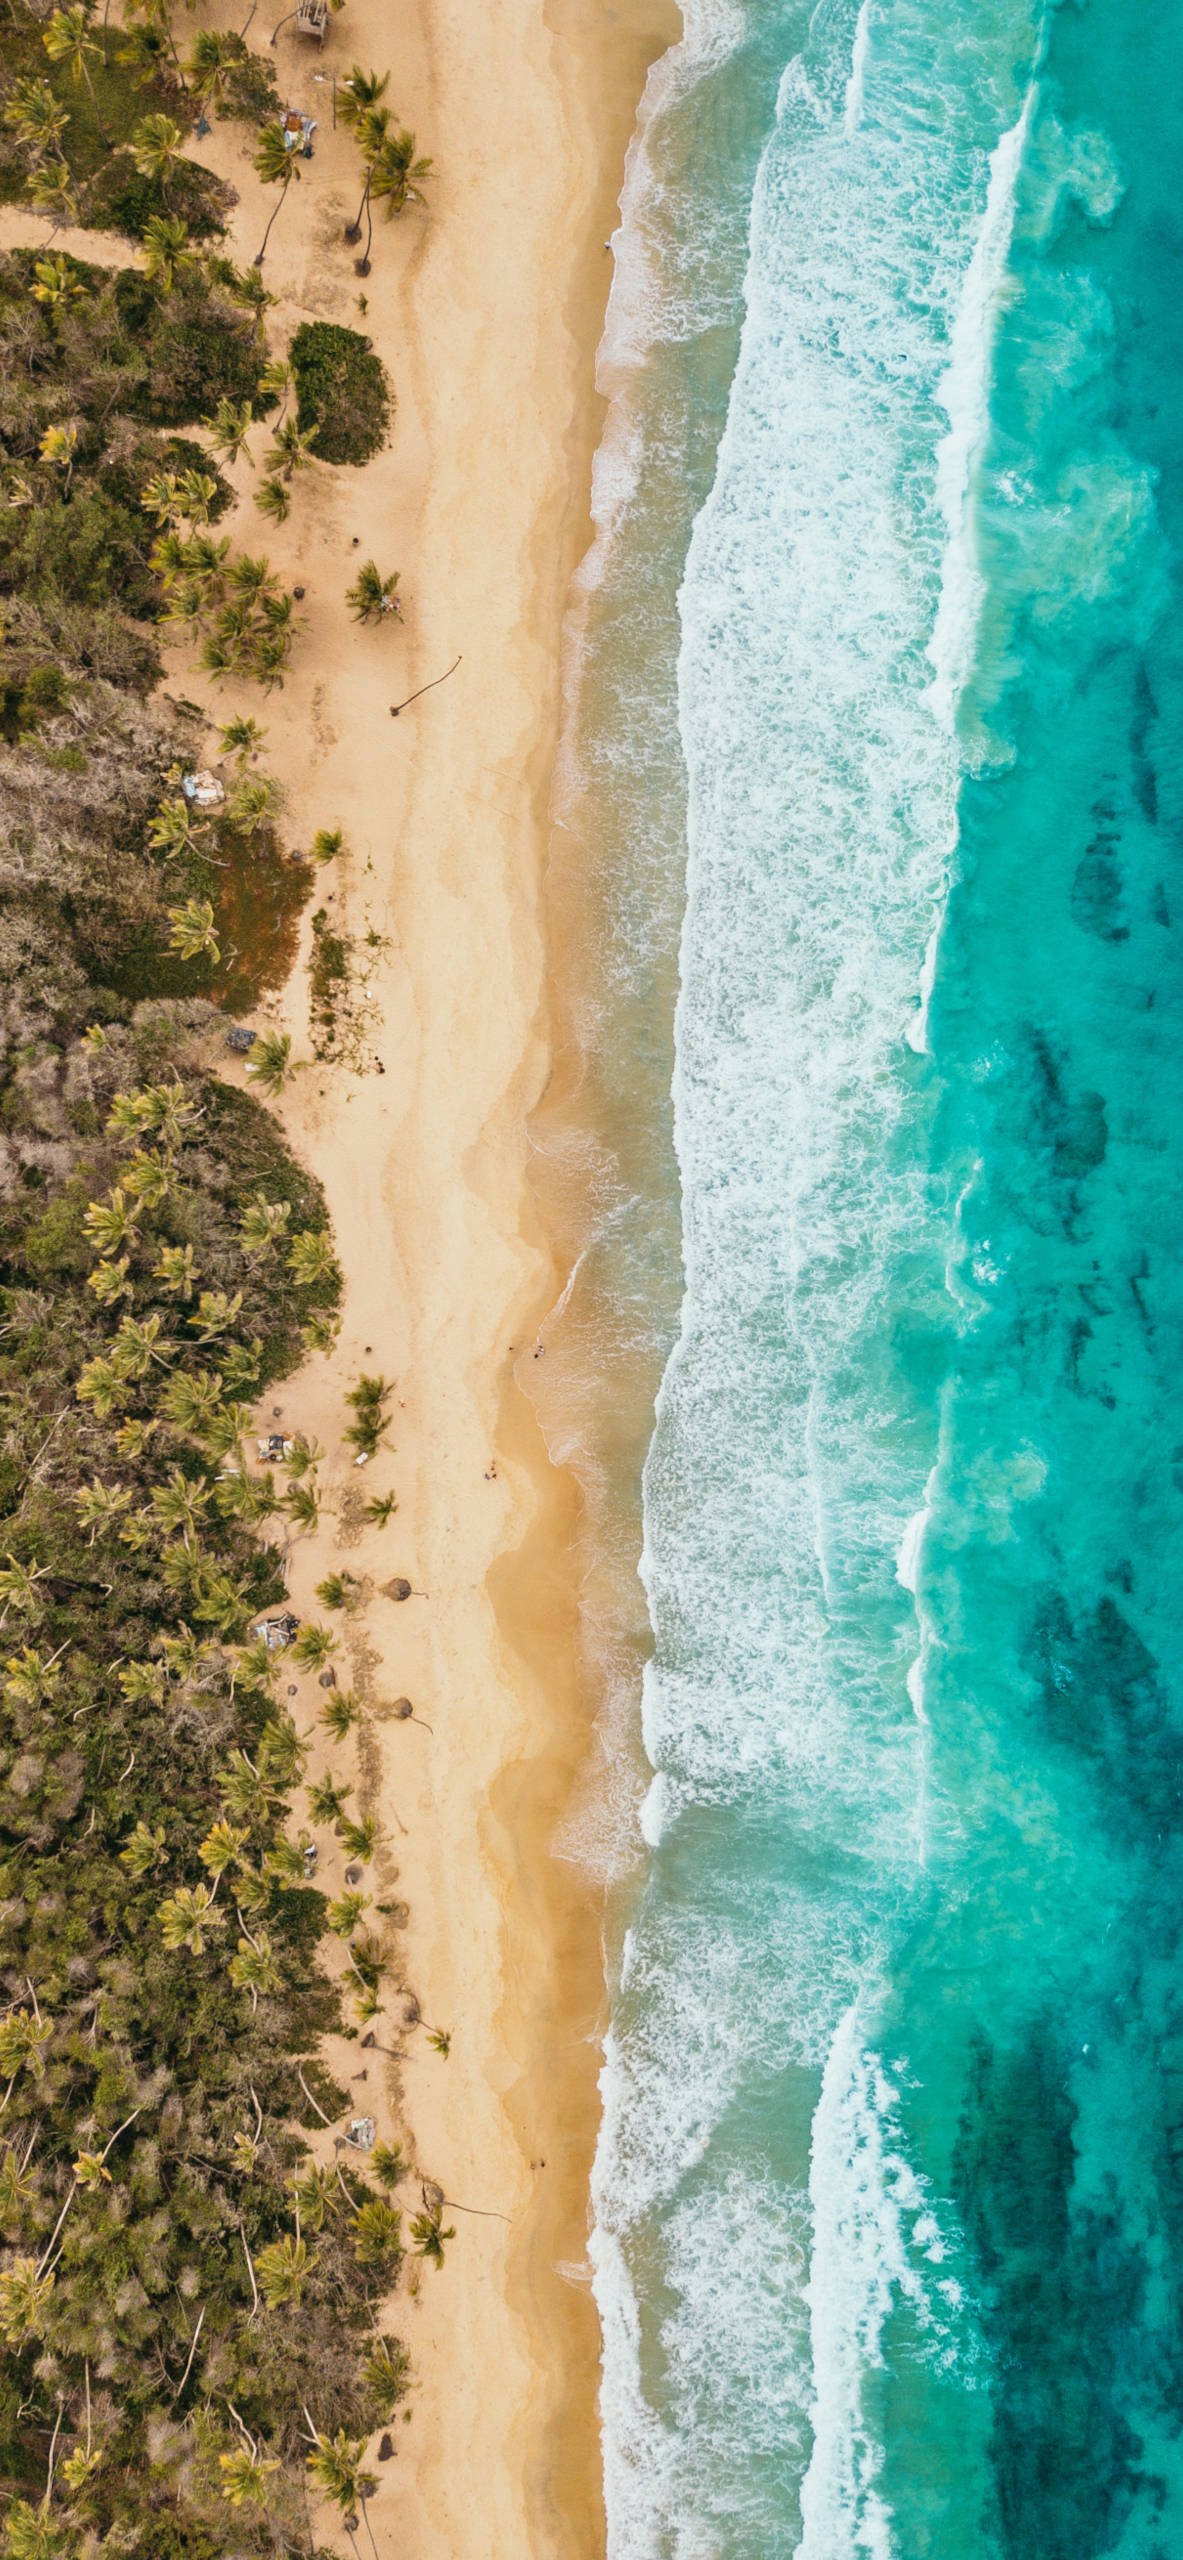 iPhone wallpapers dron view beach caribean Drone view